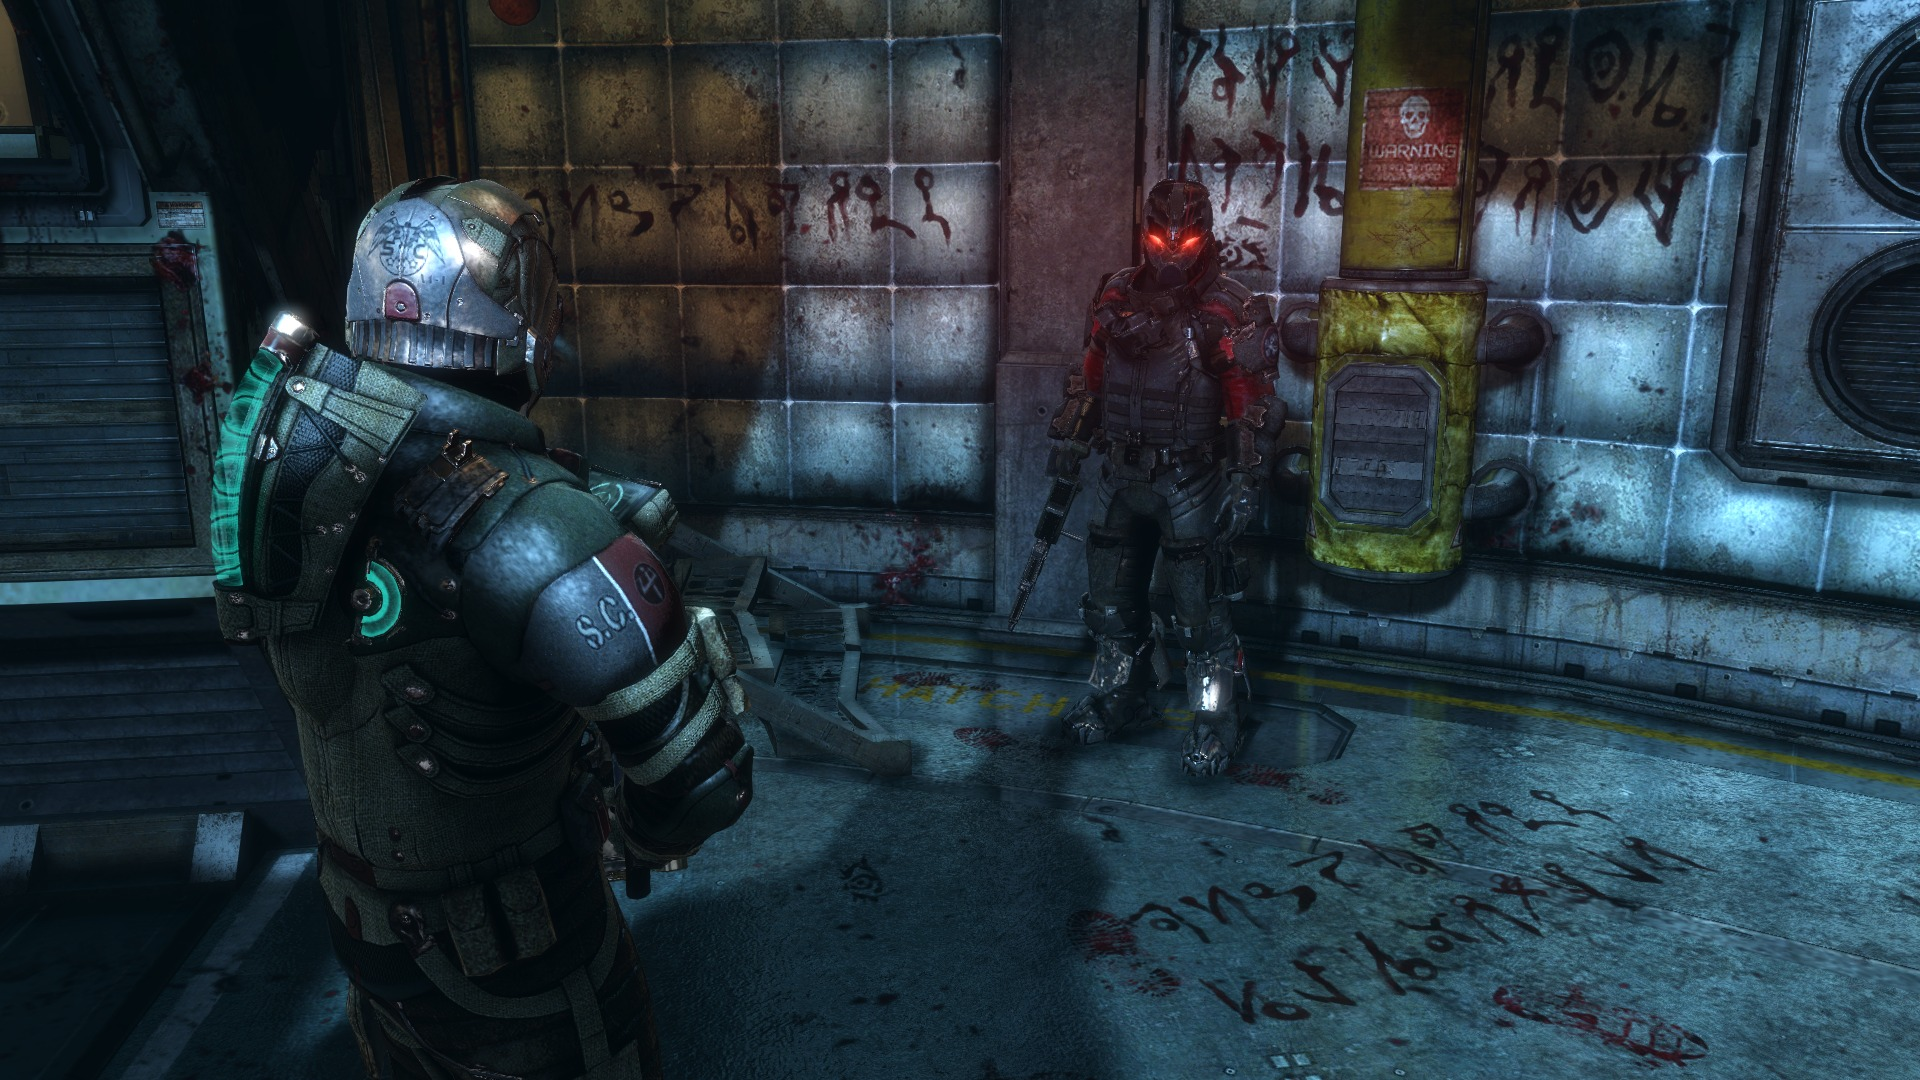 dead space 3 screenshots image 11149 new game network. Black Bedroom Furniture Sets. Home Design Ideas